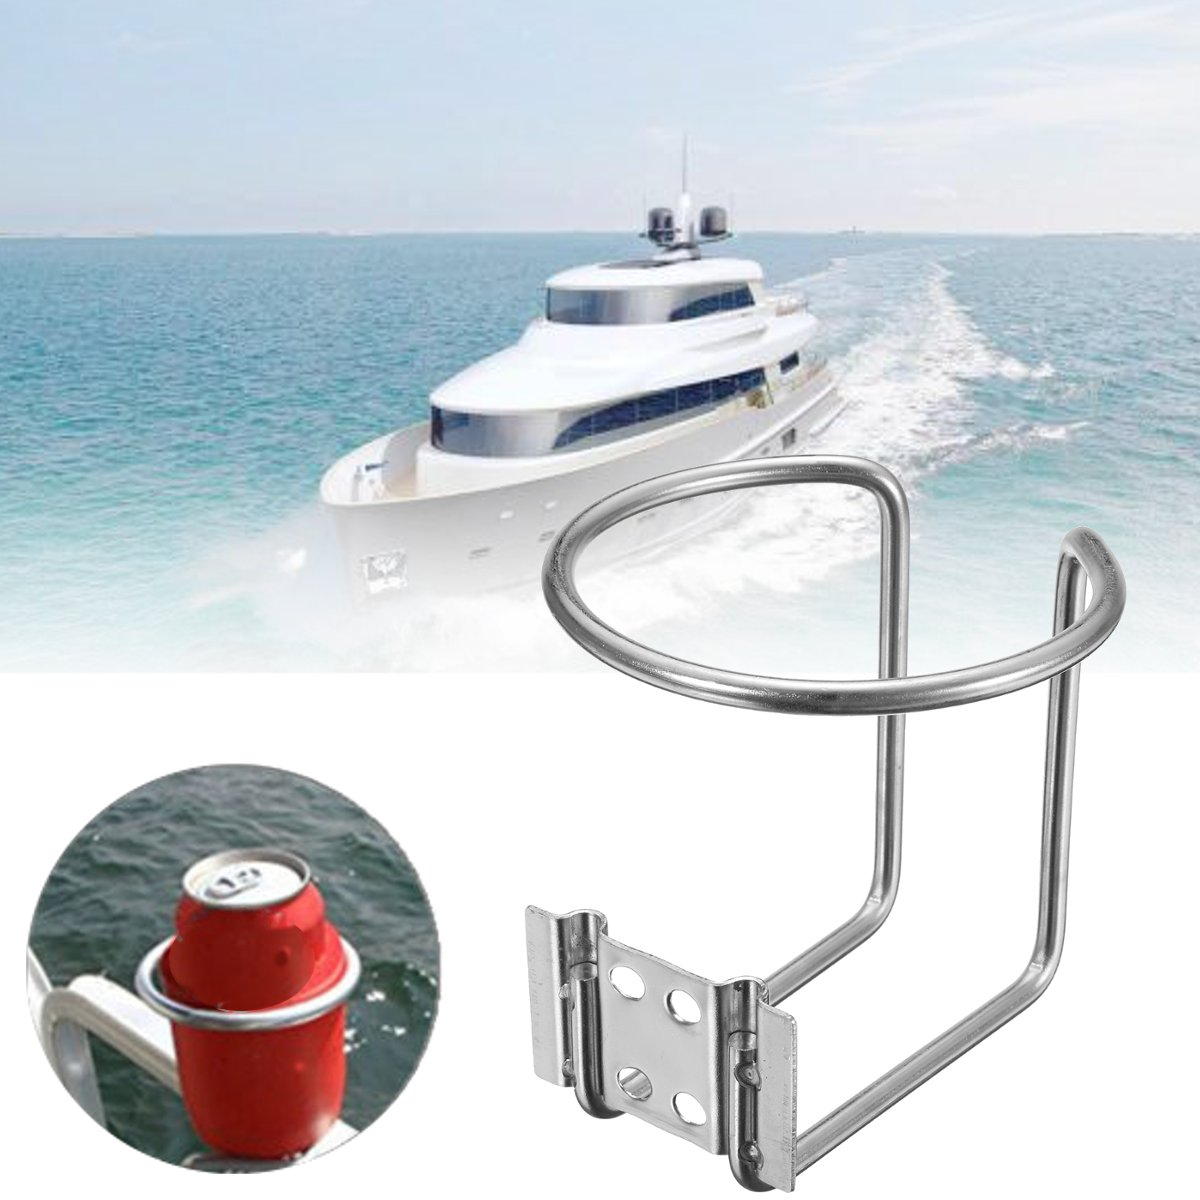 Universal Car Ring Cup Holder Stainless Steel Water Drink Beverage Bottle Stand Holder For Marine Boat Yacht Truck RV